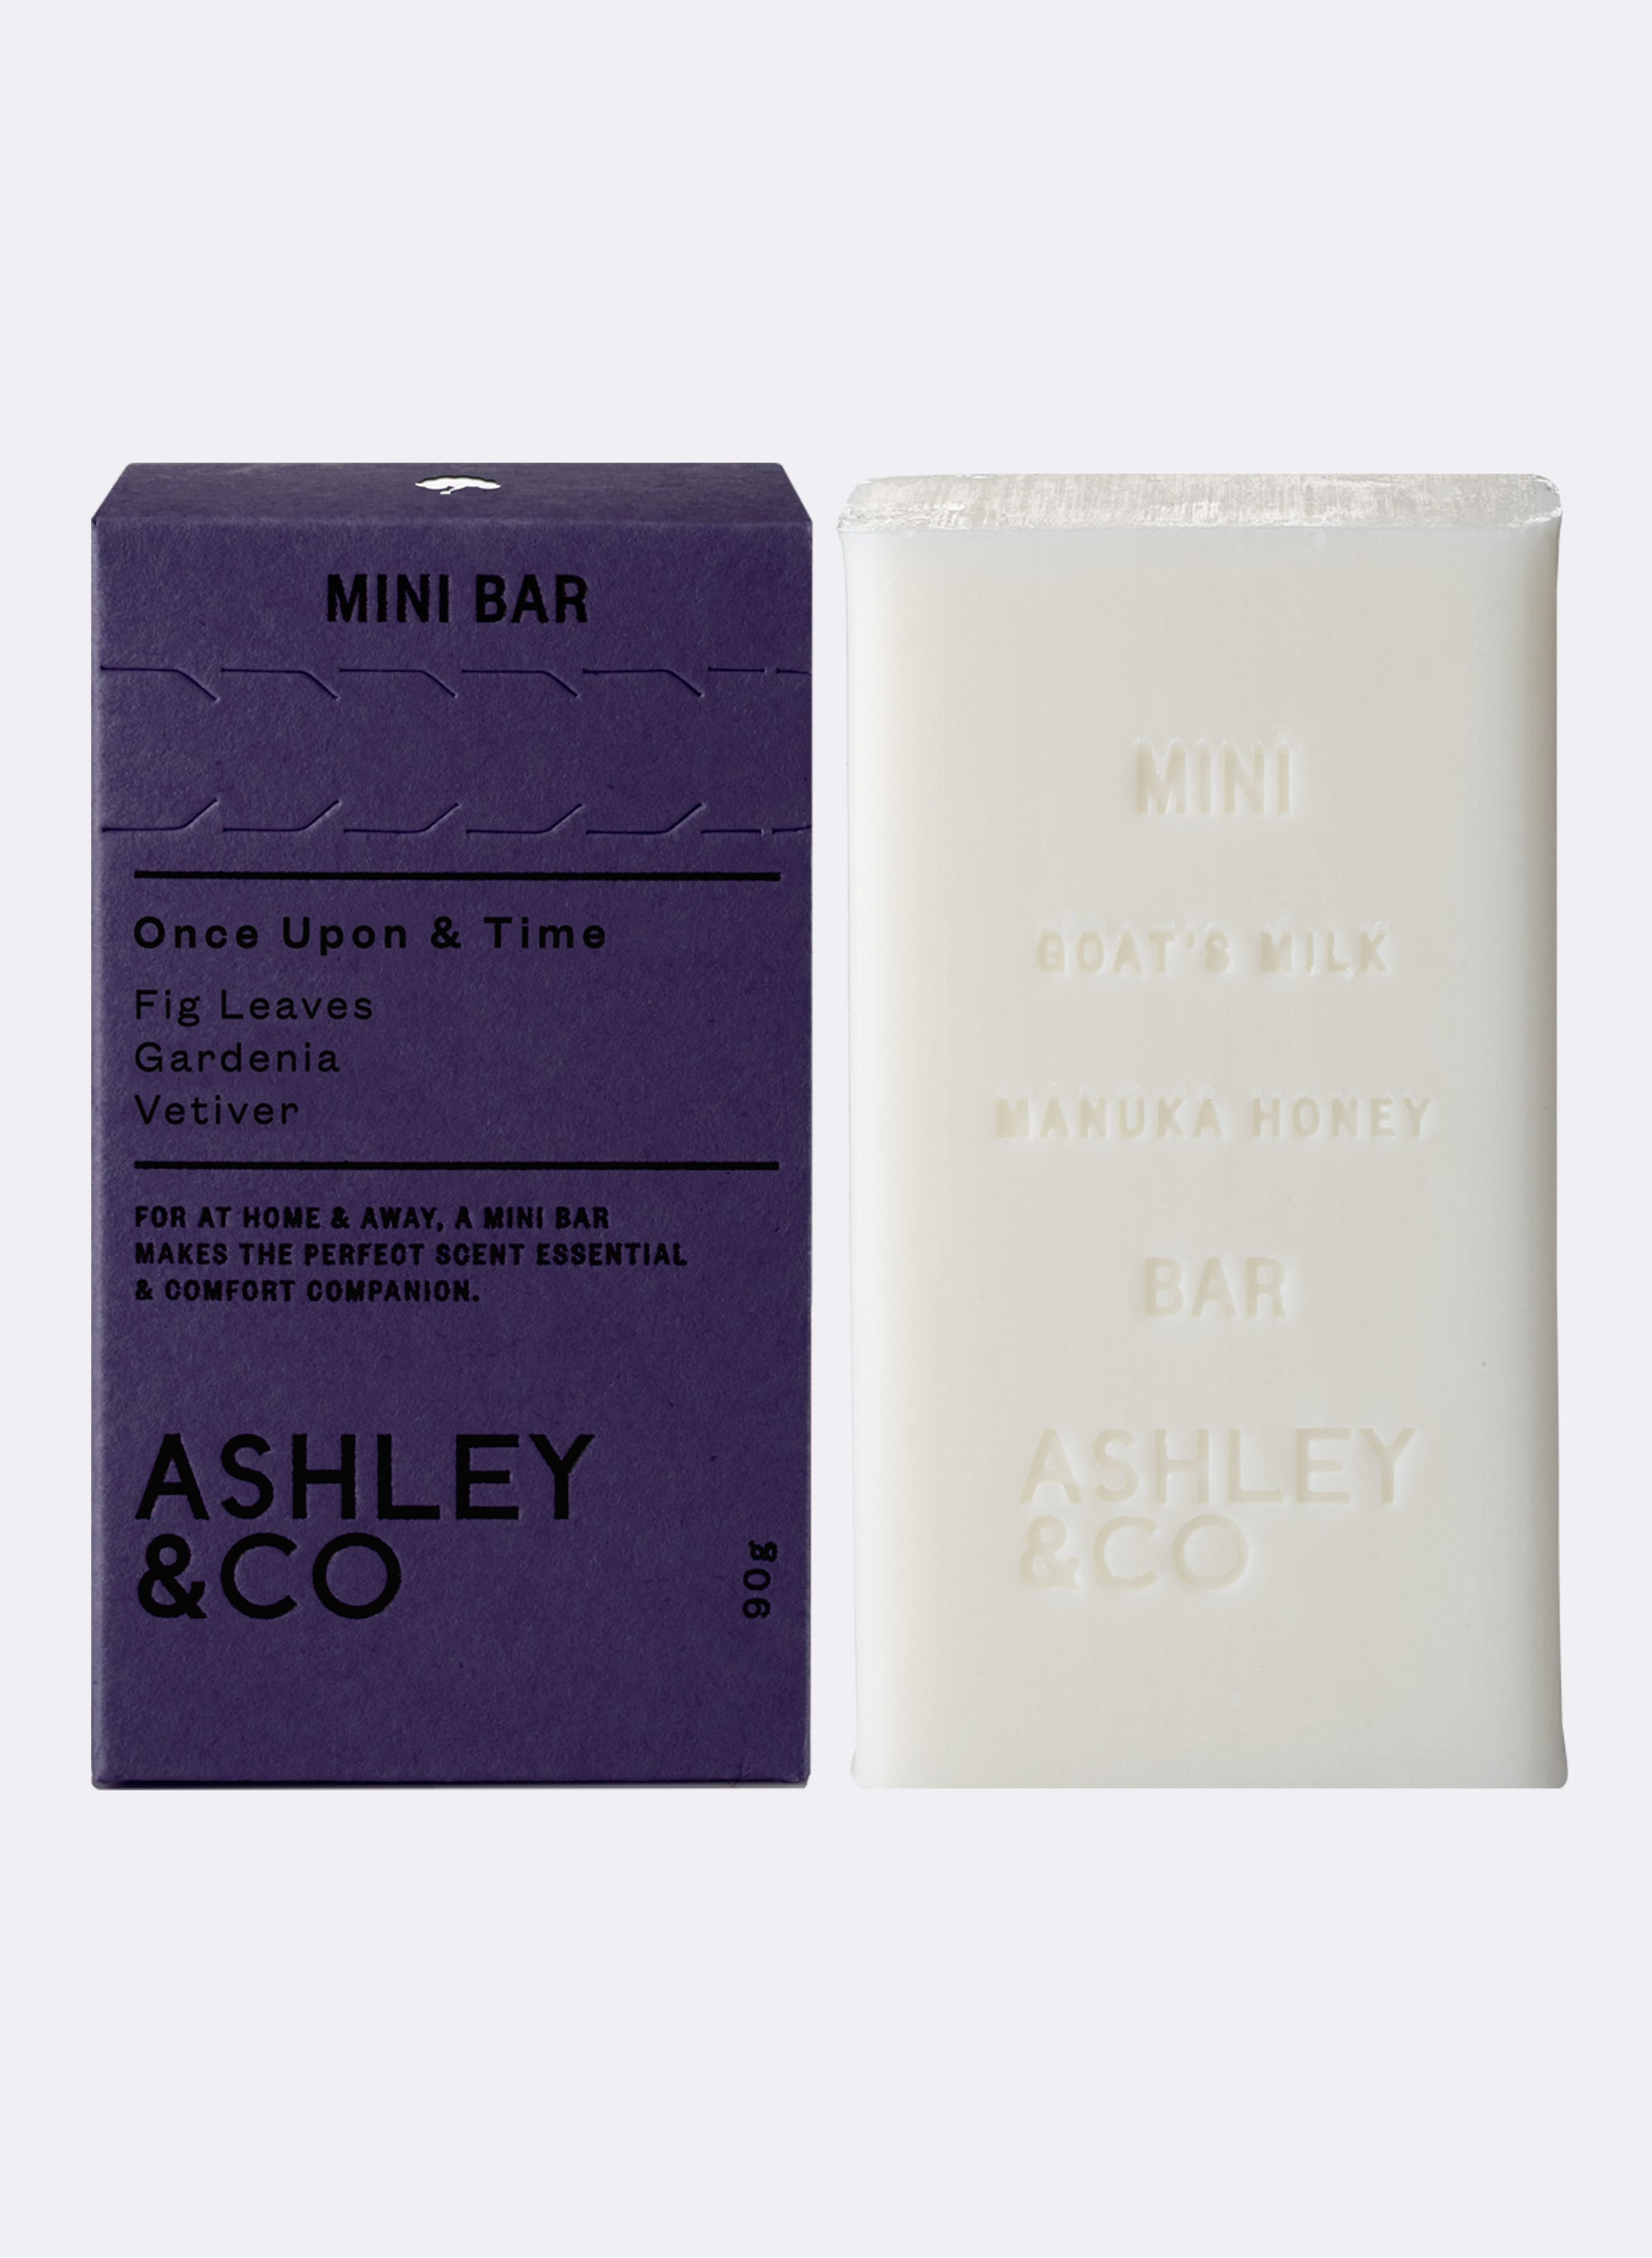 Mini Bar Soap - Once Upon & Time